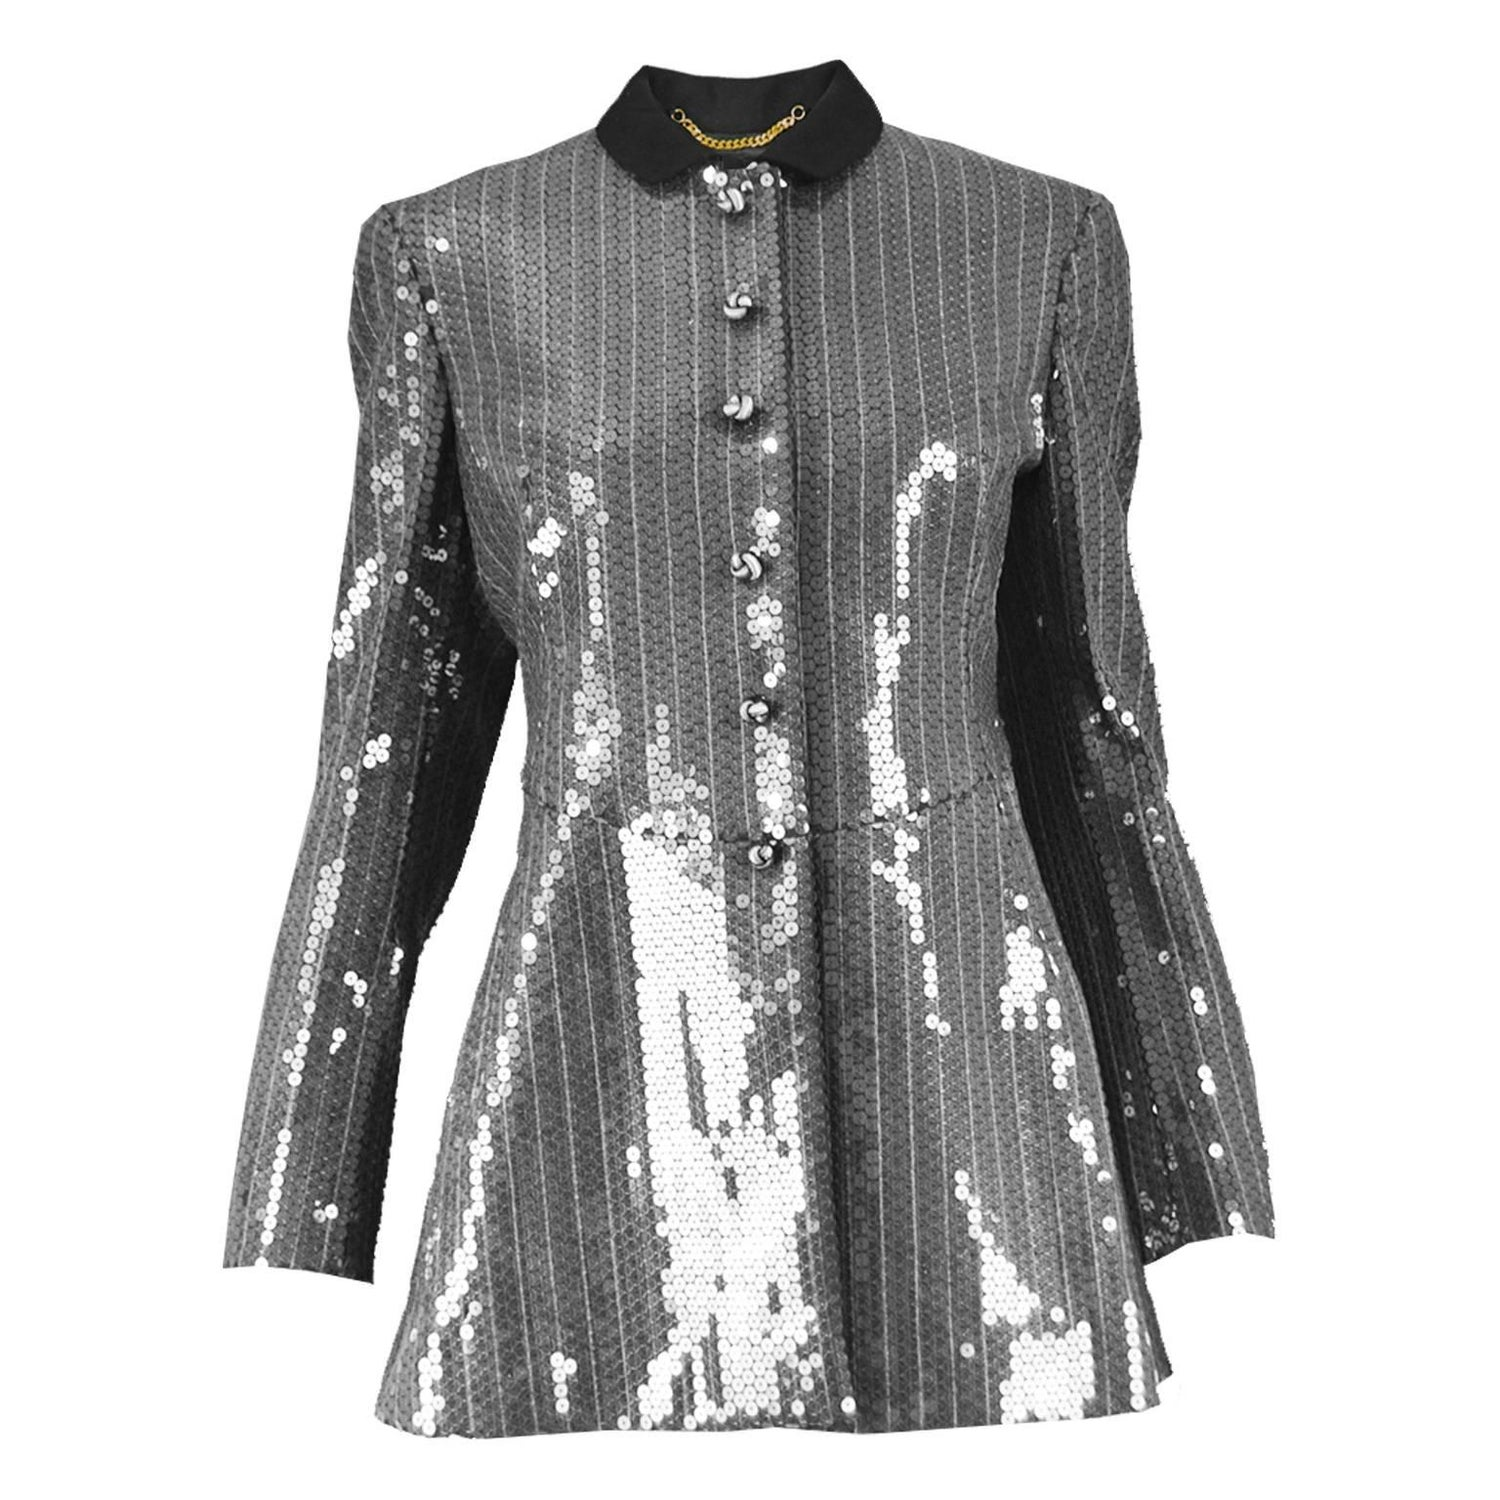 a8659e3b Moschino Couture Clear Silver Sequin Striped Tailored Military Jacket at  1stdibs